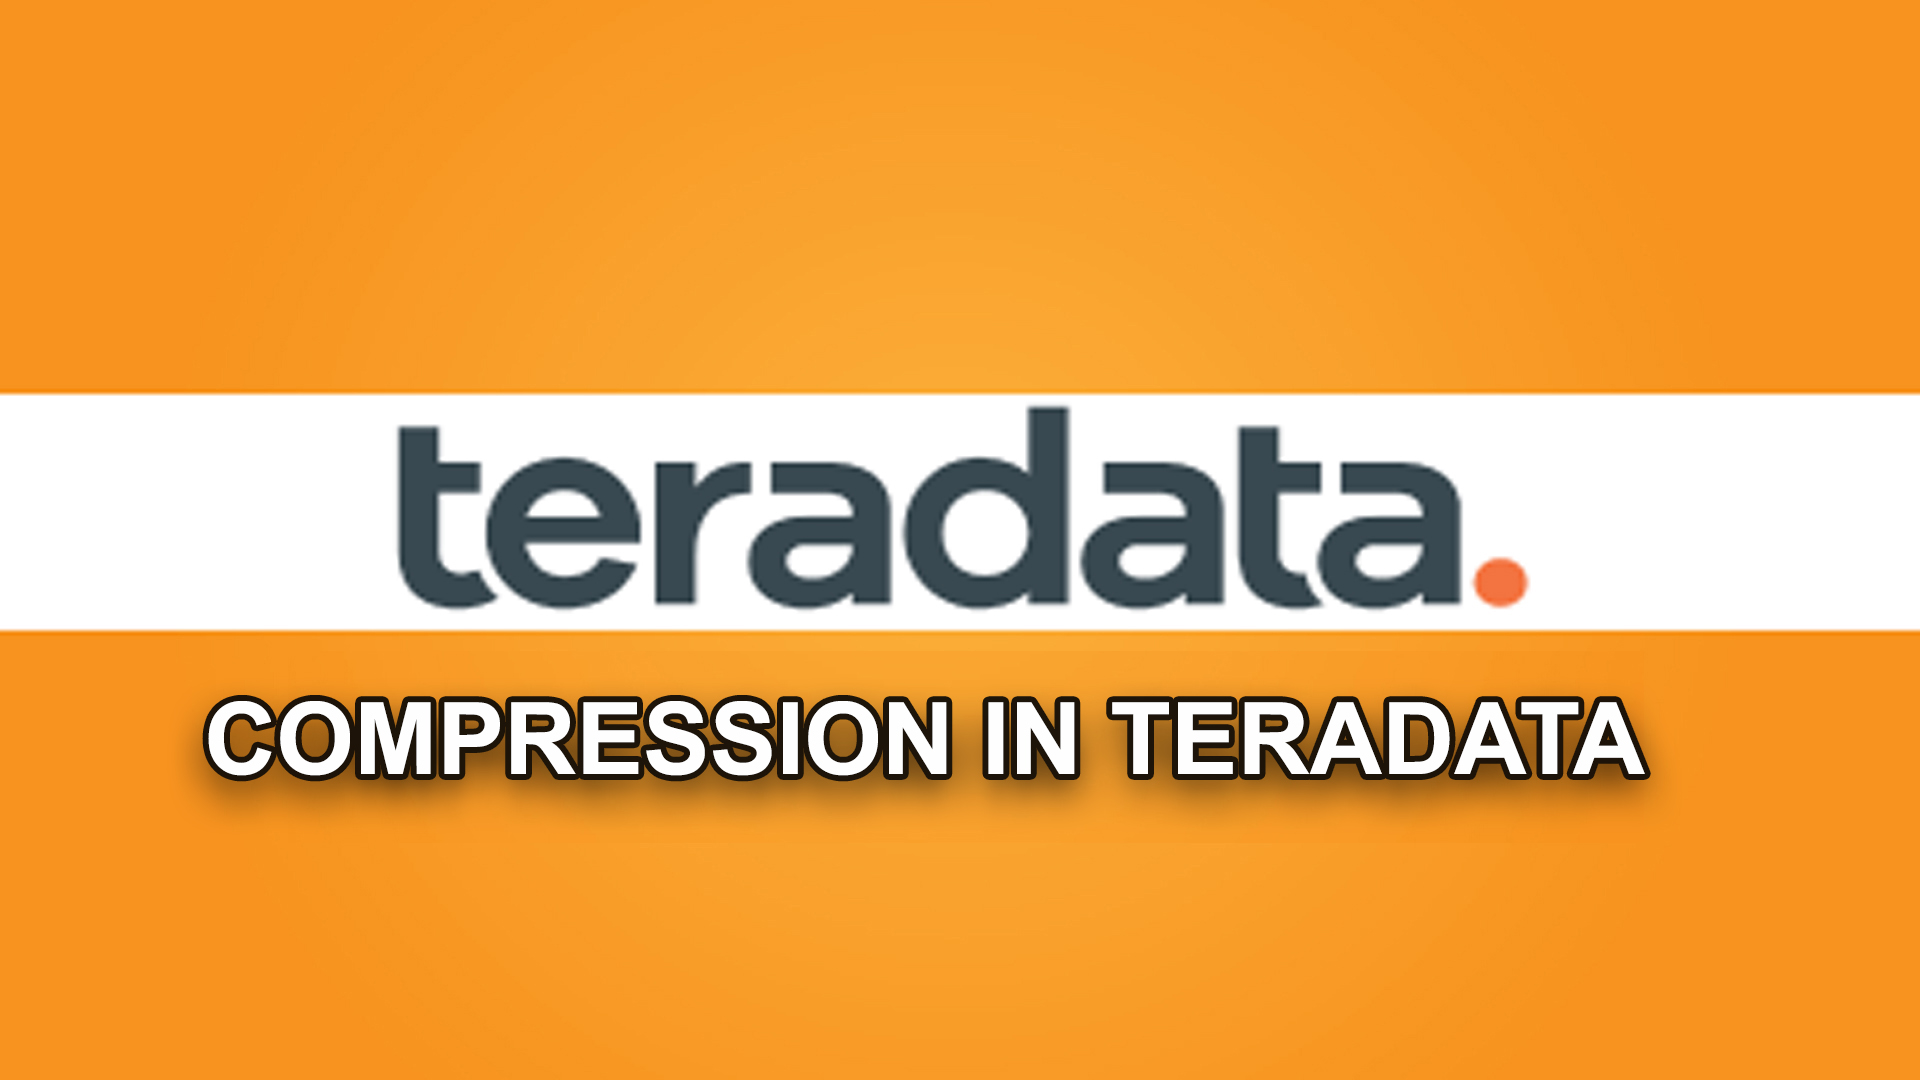 COMPRESSION IN TERADATA